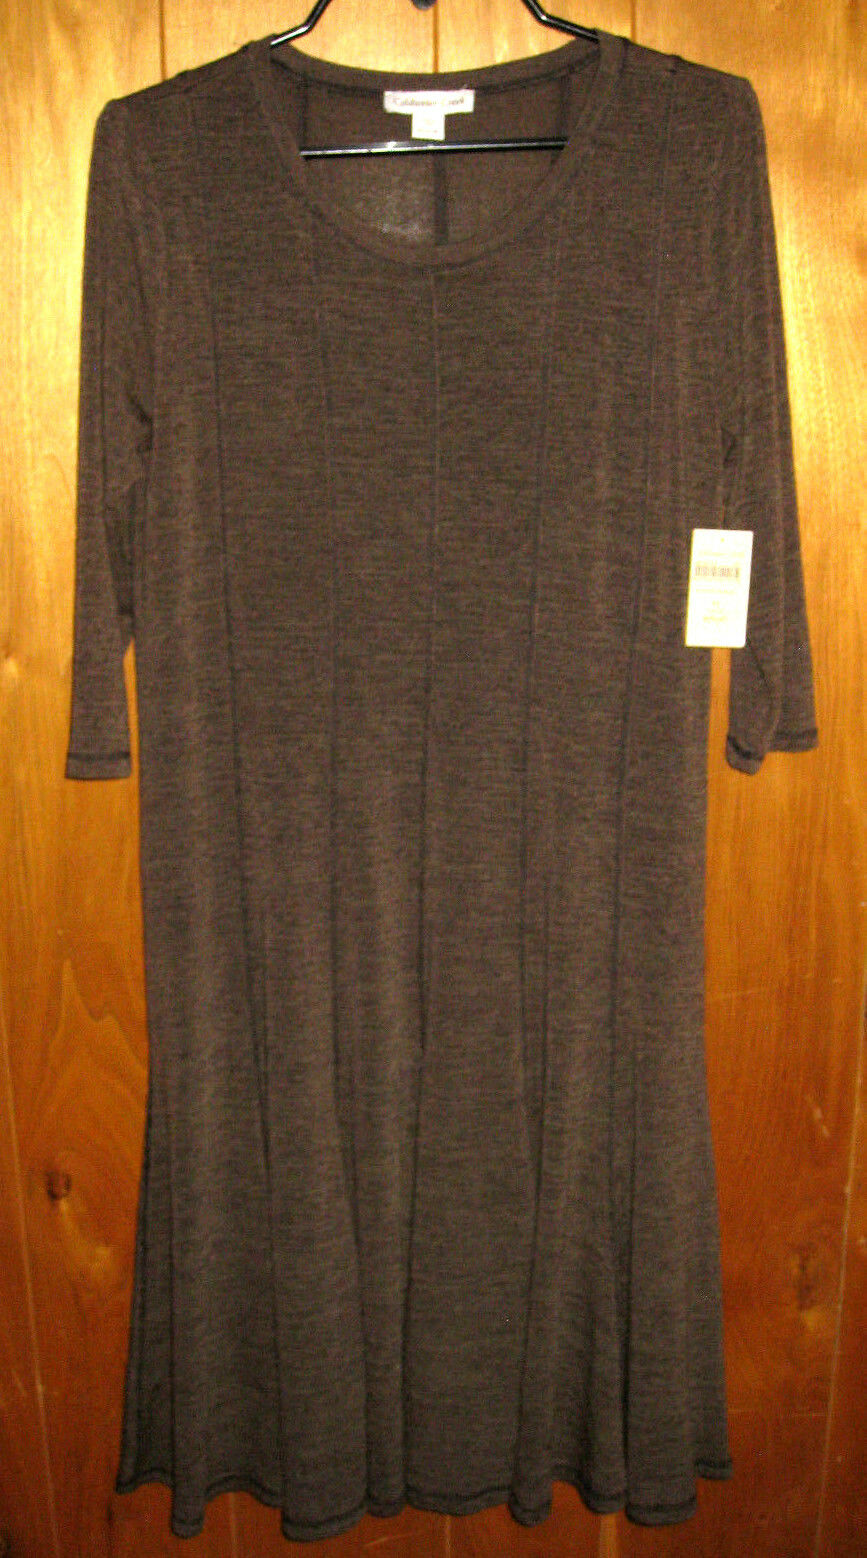 Coldwater Creek Seamed Tee Dress Brown Brown Brown Career Womens Size Petite Small PS (6-8) 448ae6